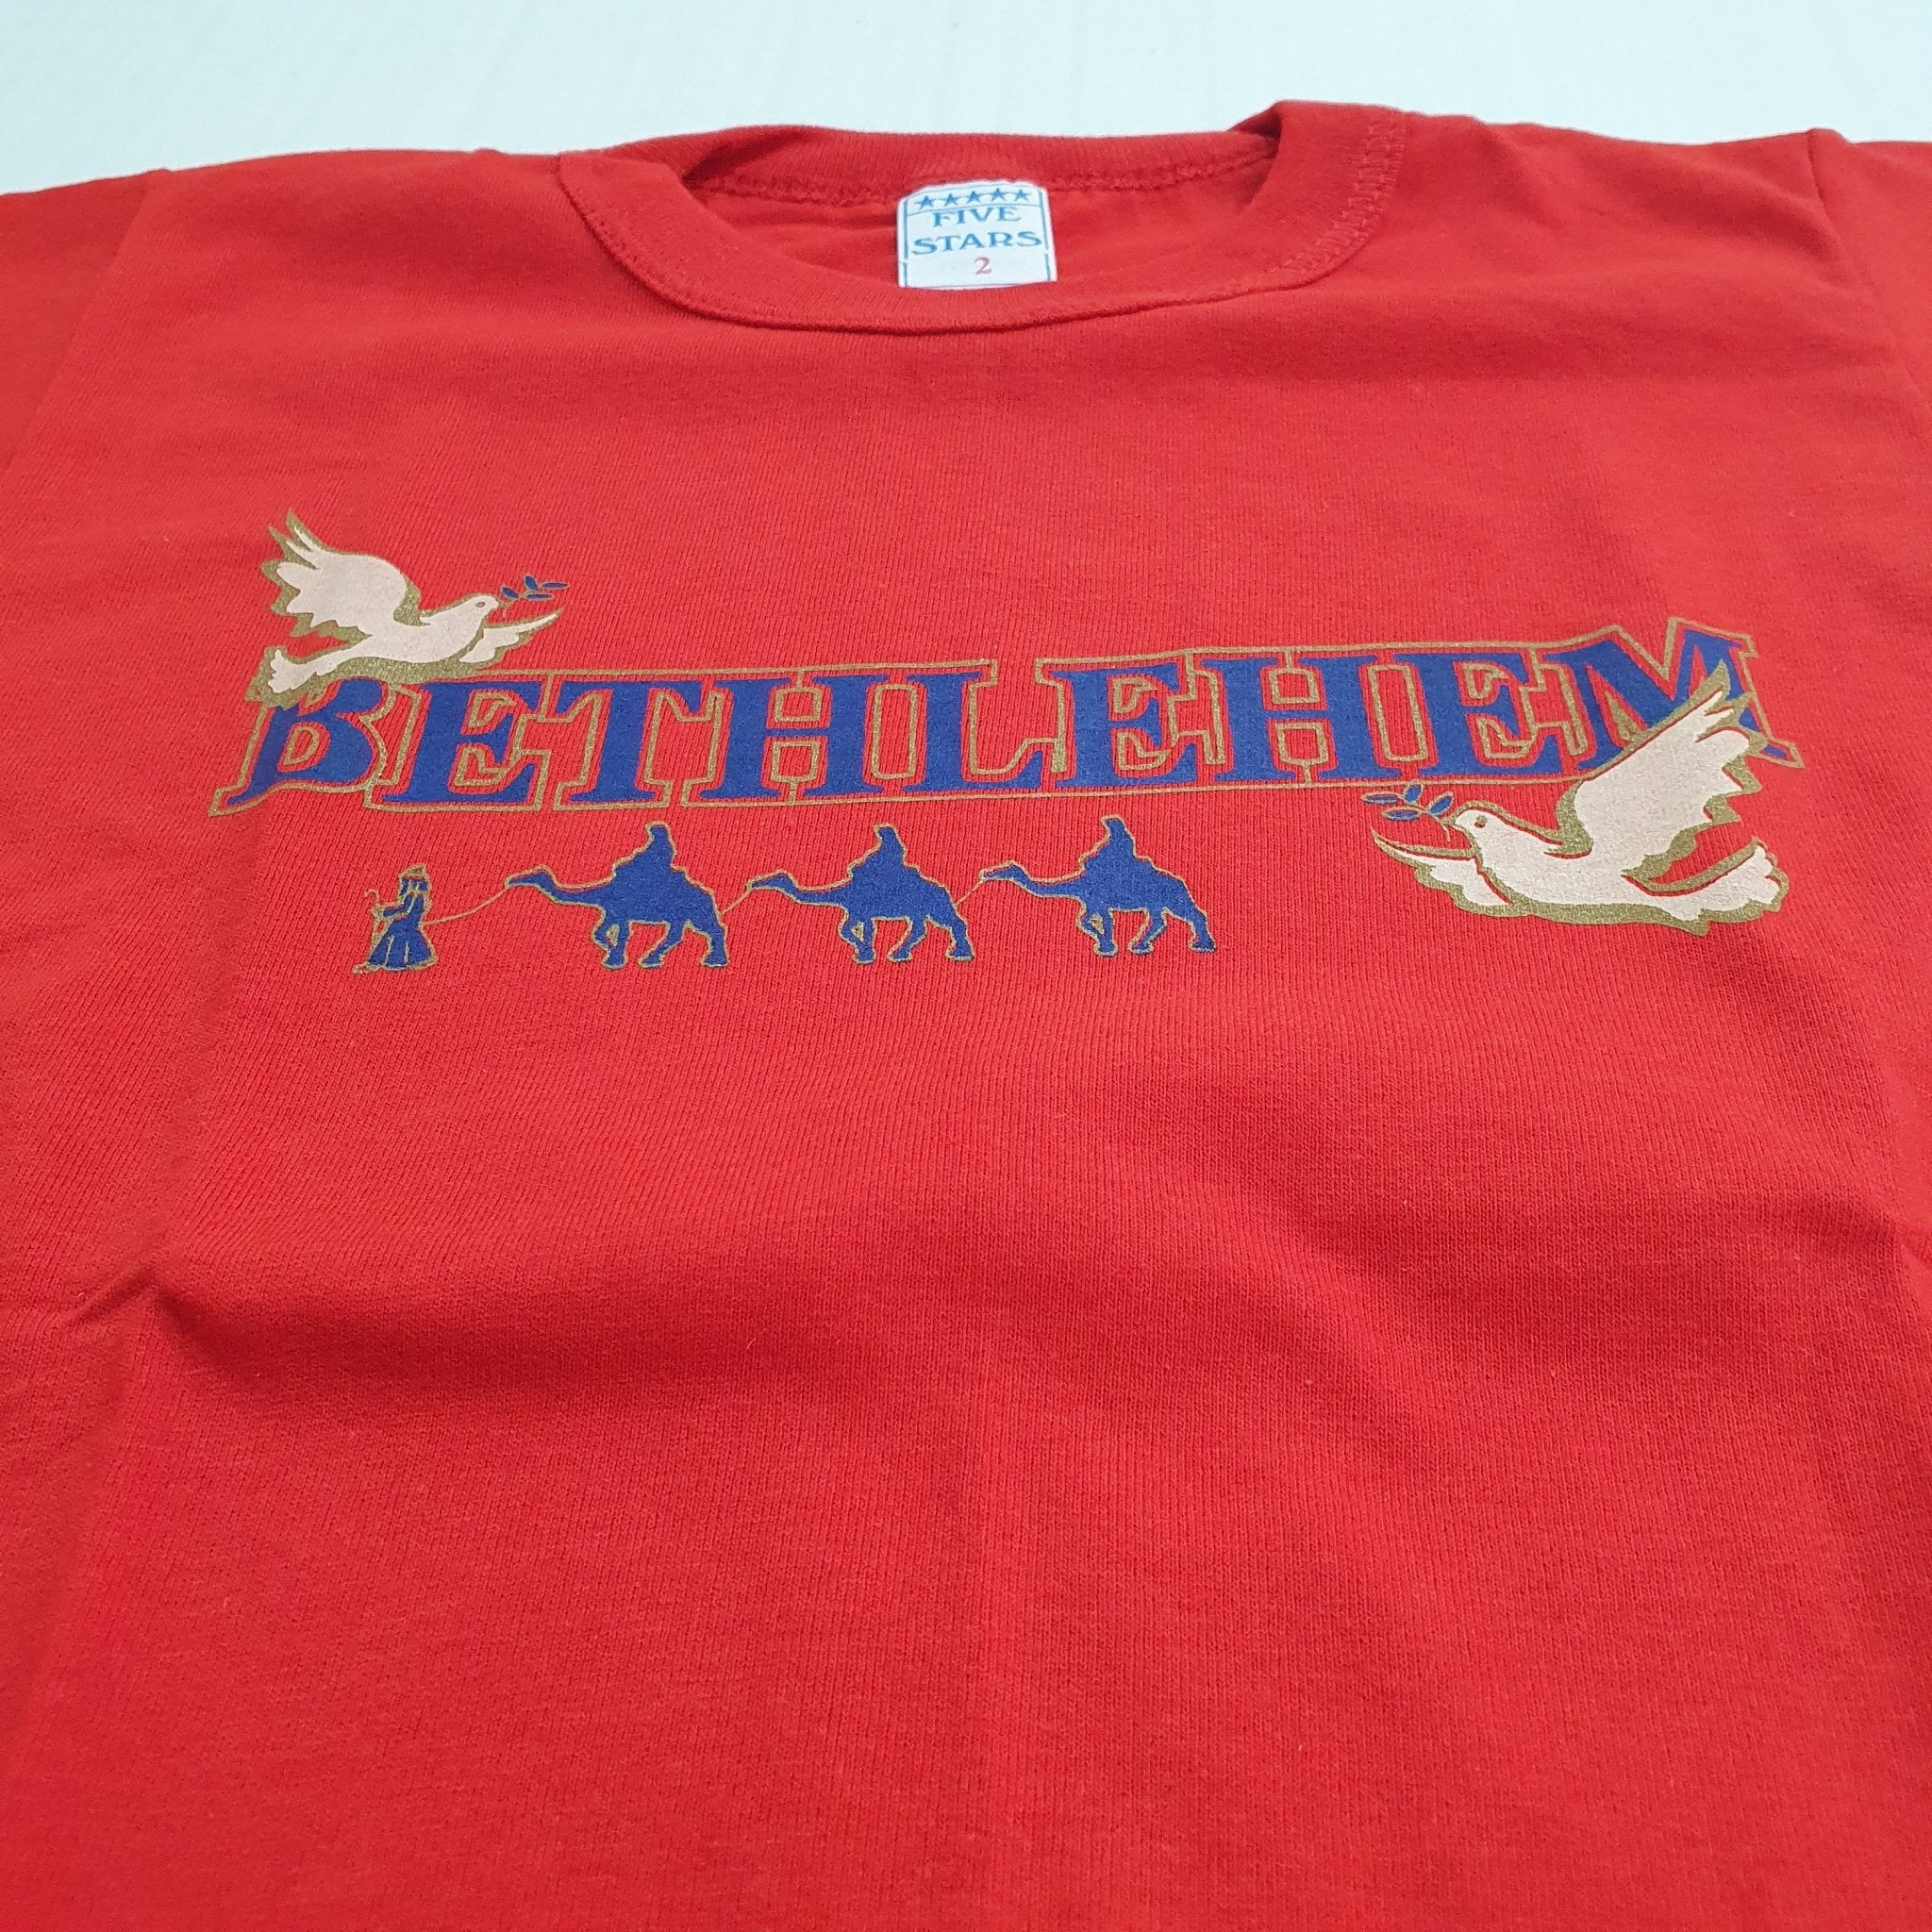 TSHo015 bethlehem dove t shirt 2 years old - Zuluf